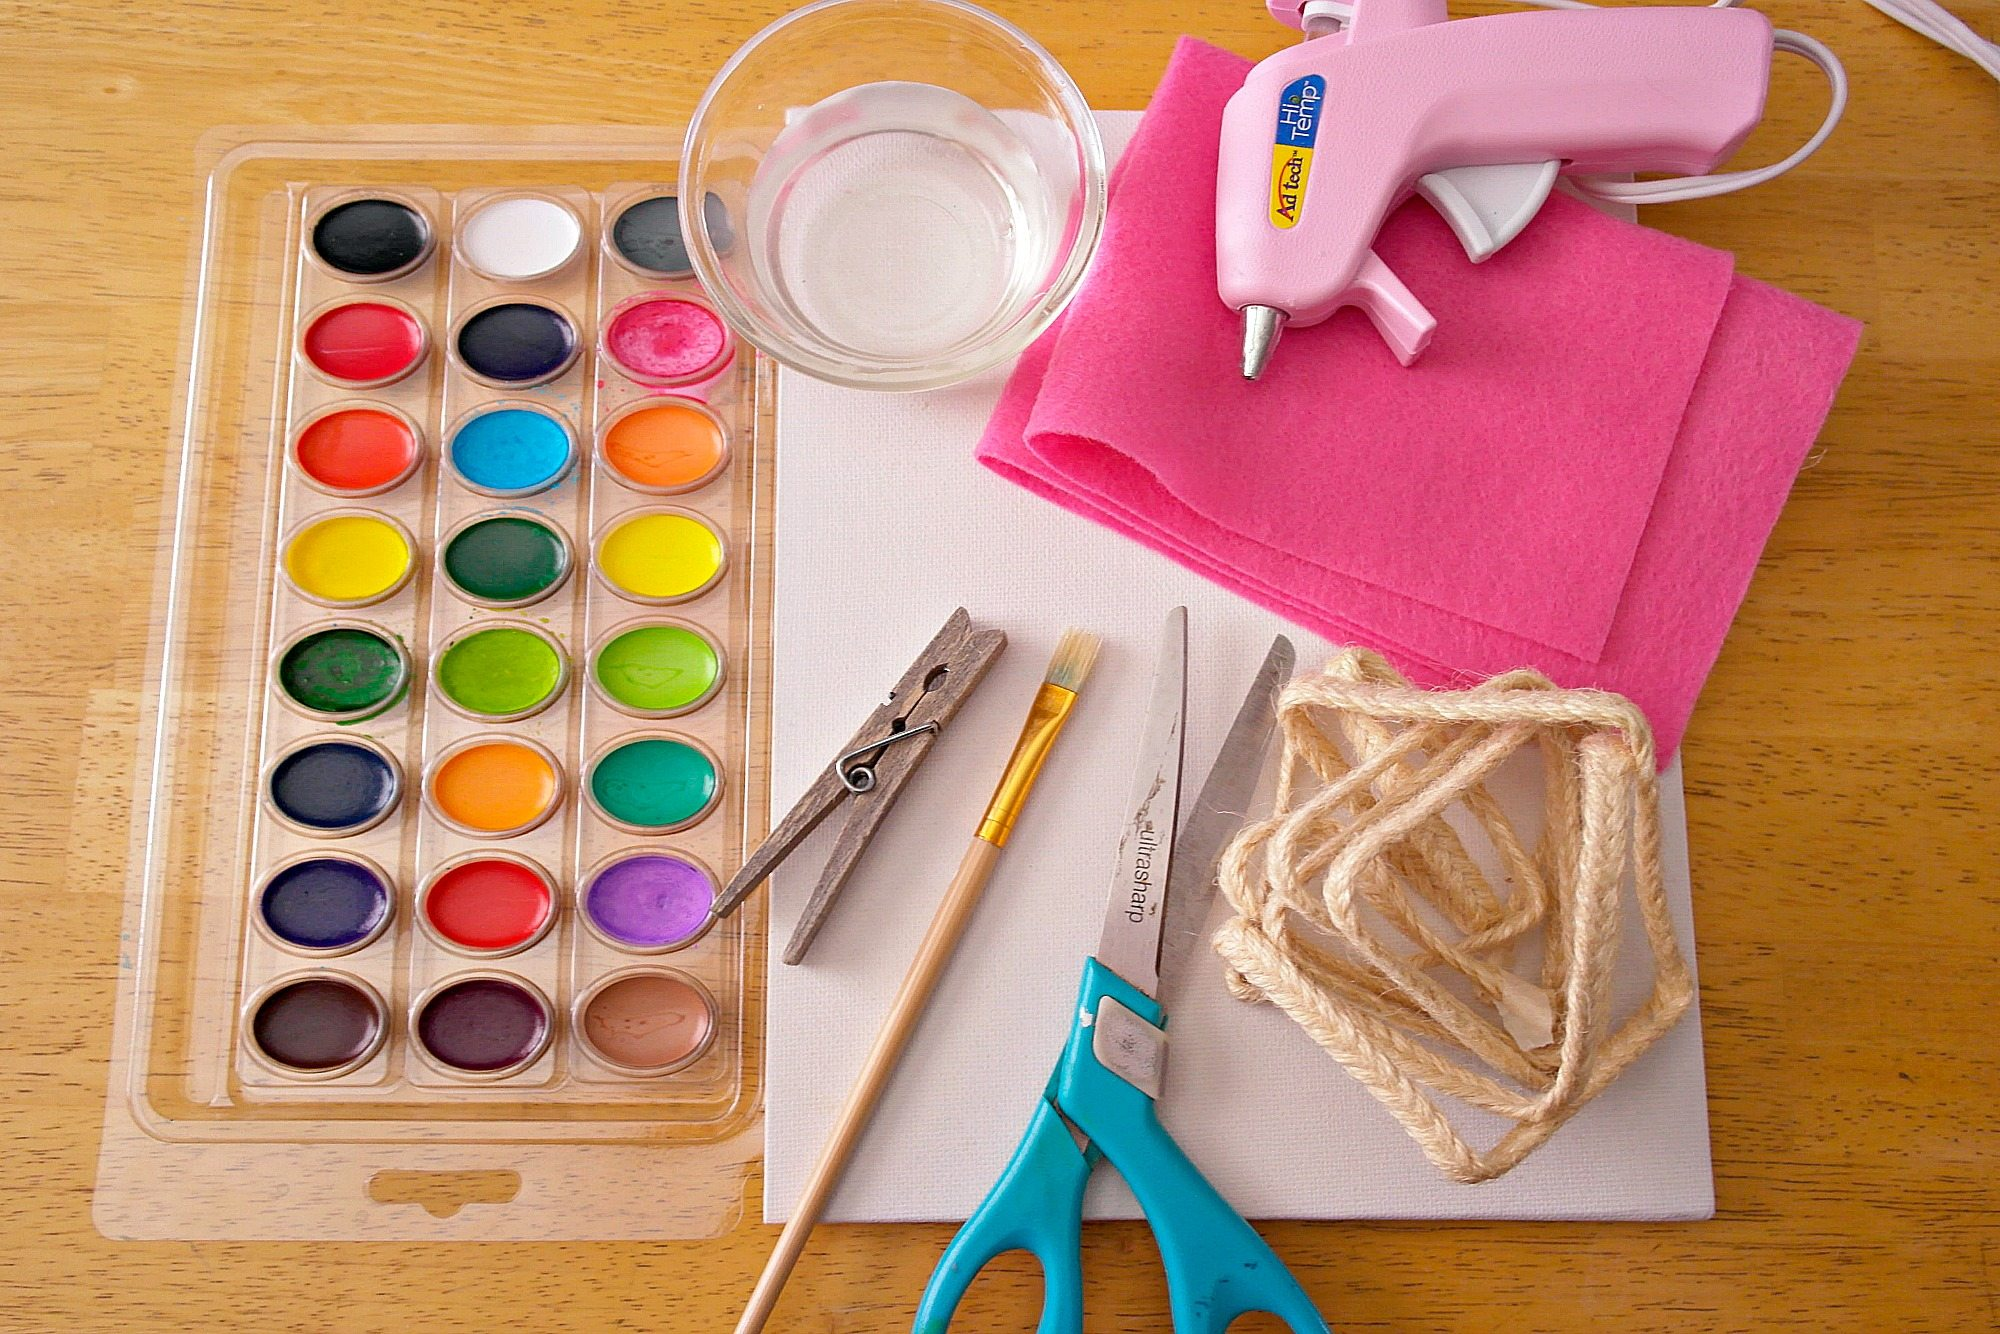 Materials needed for Watercolor Canvas Photo Project